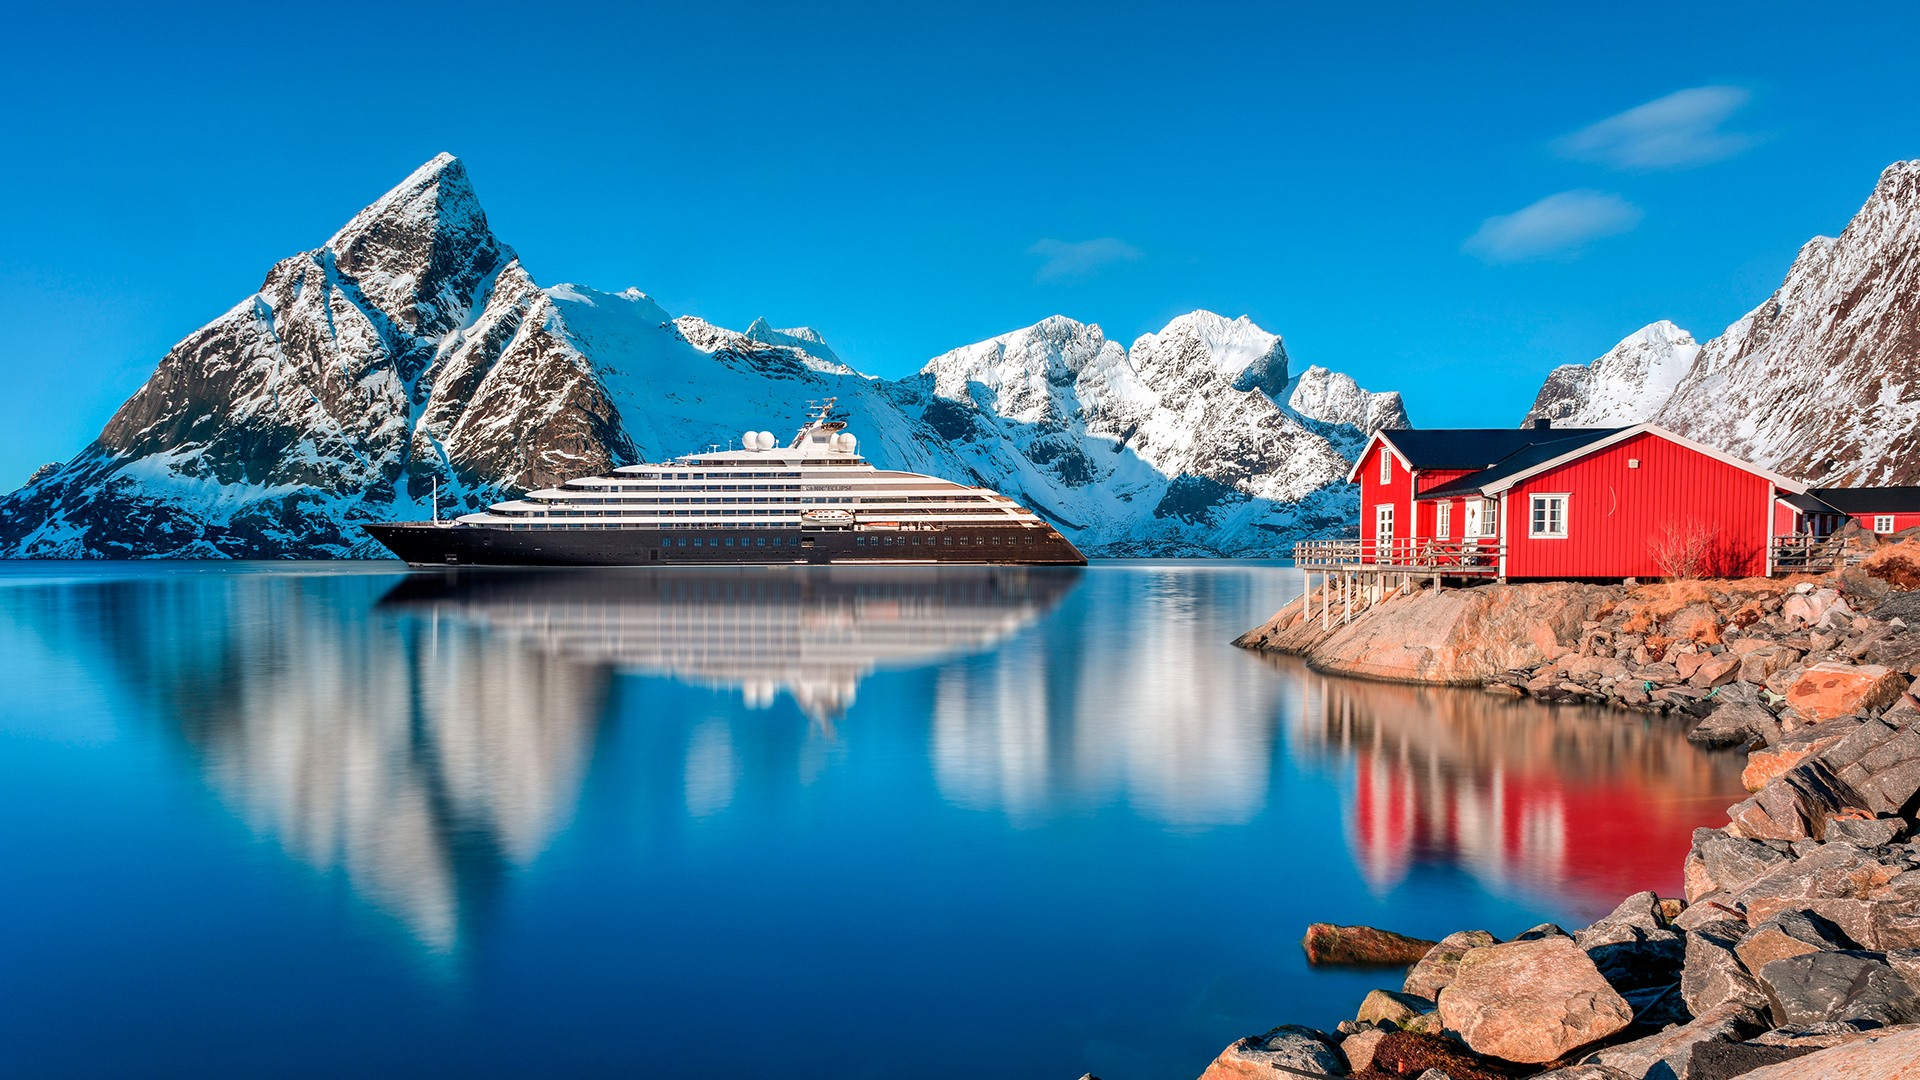 Scenic Luxury Cruises & Tours has unveiled its 2022 - 2023 Arctic program for its ultra-luxury Scenic Eclipse.